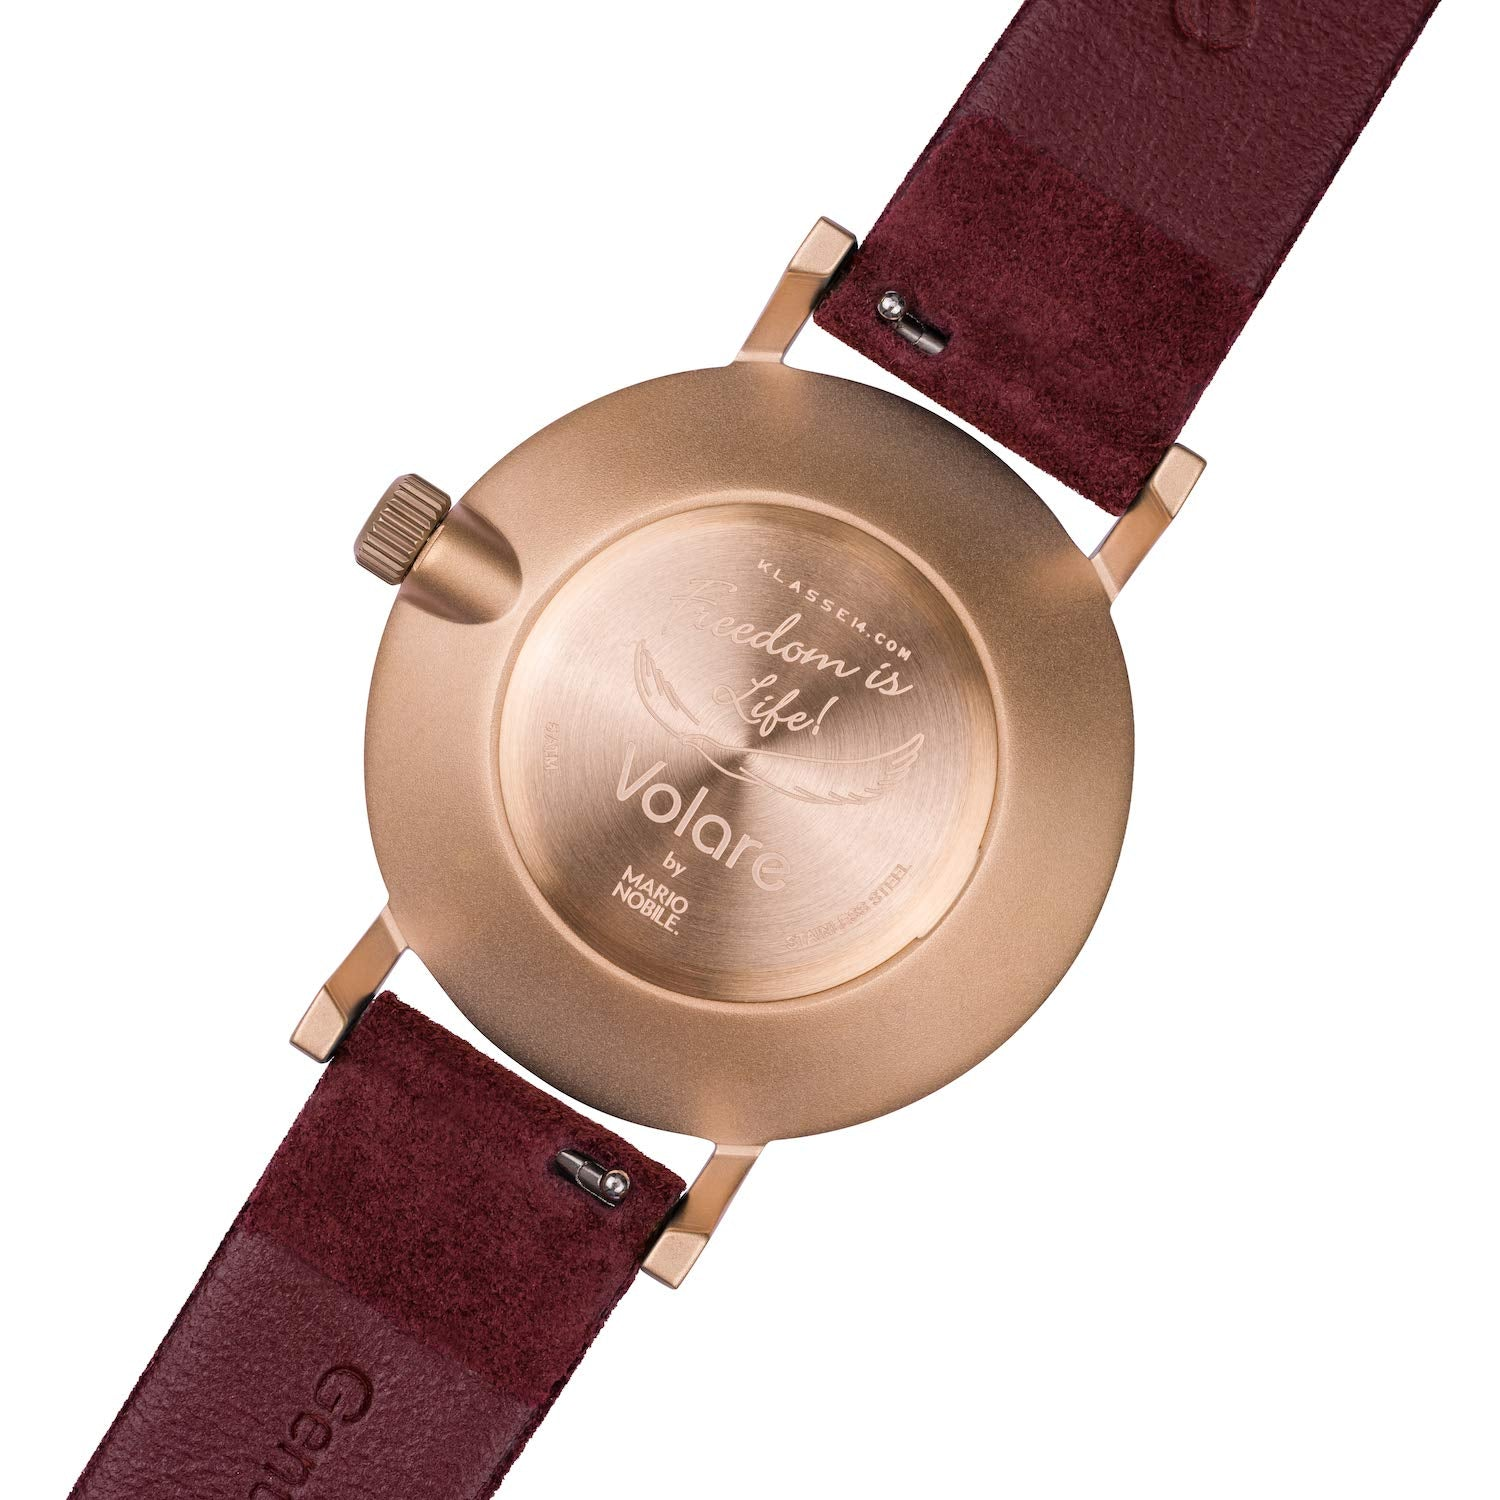 Miss Volare Leather Band Women's Watch